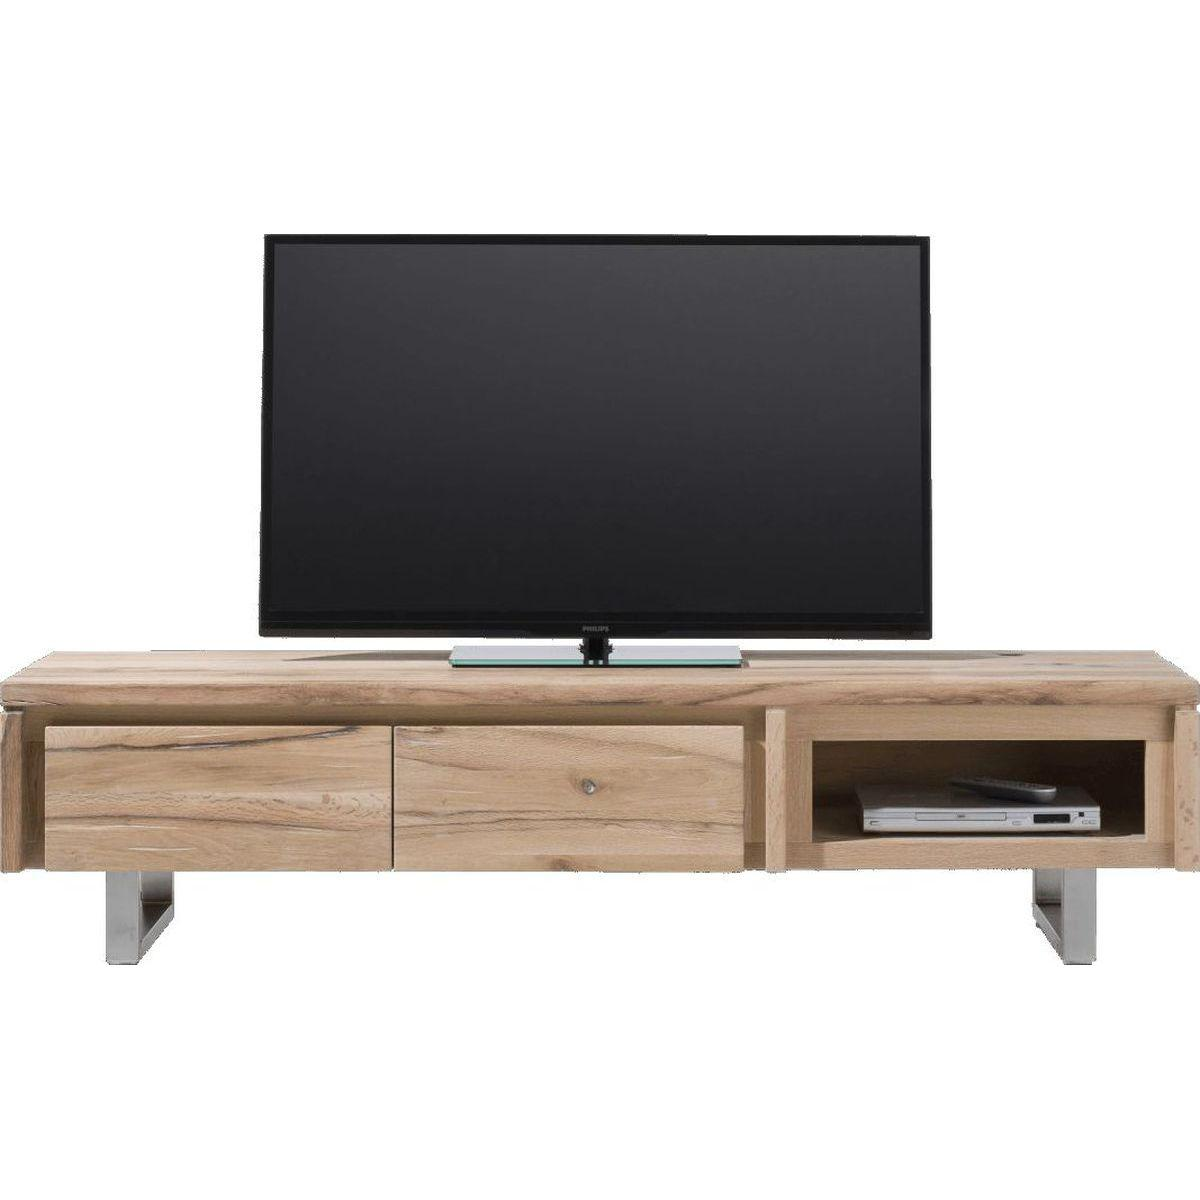 MORE by H&H Meuble TV180cm